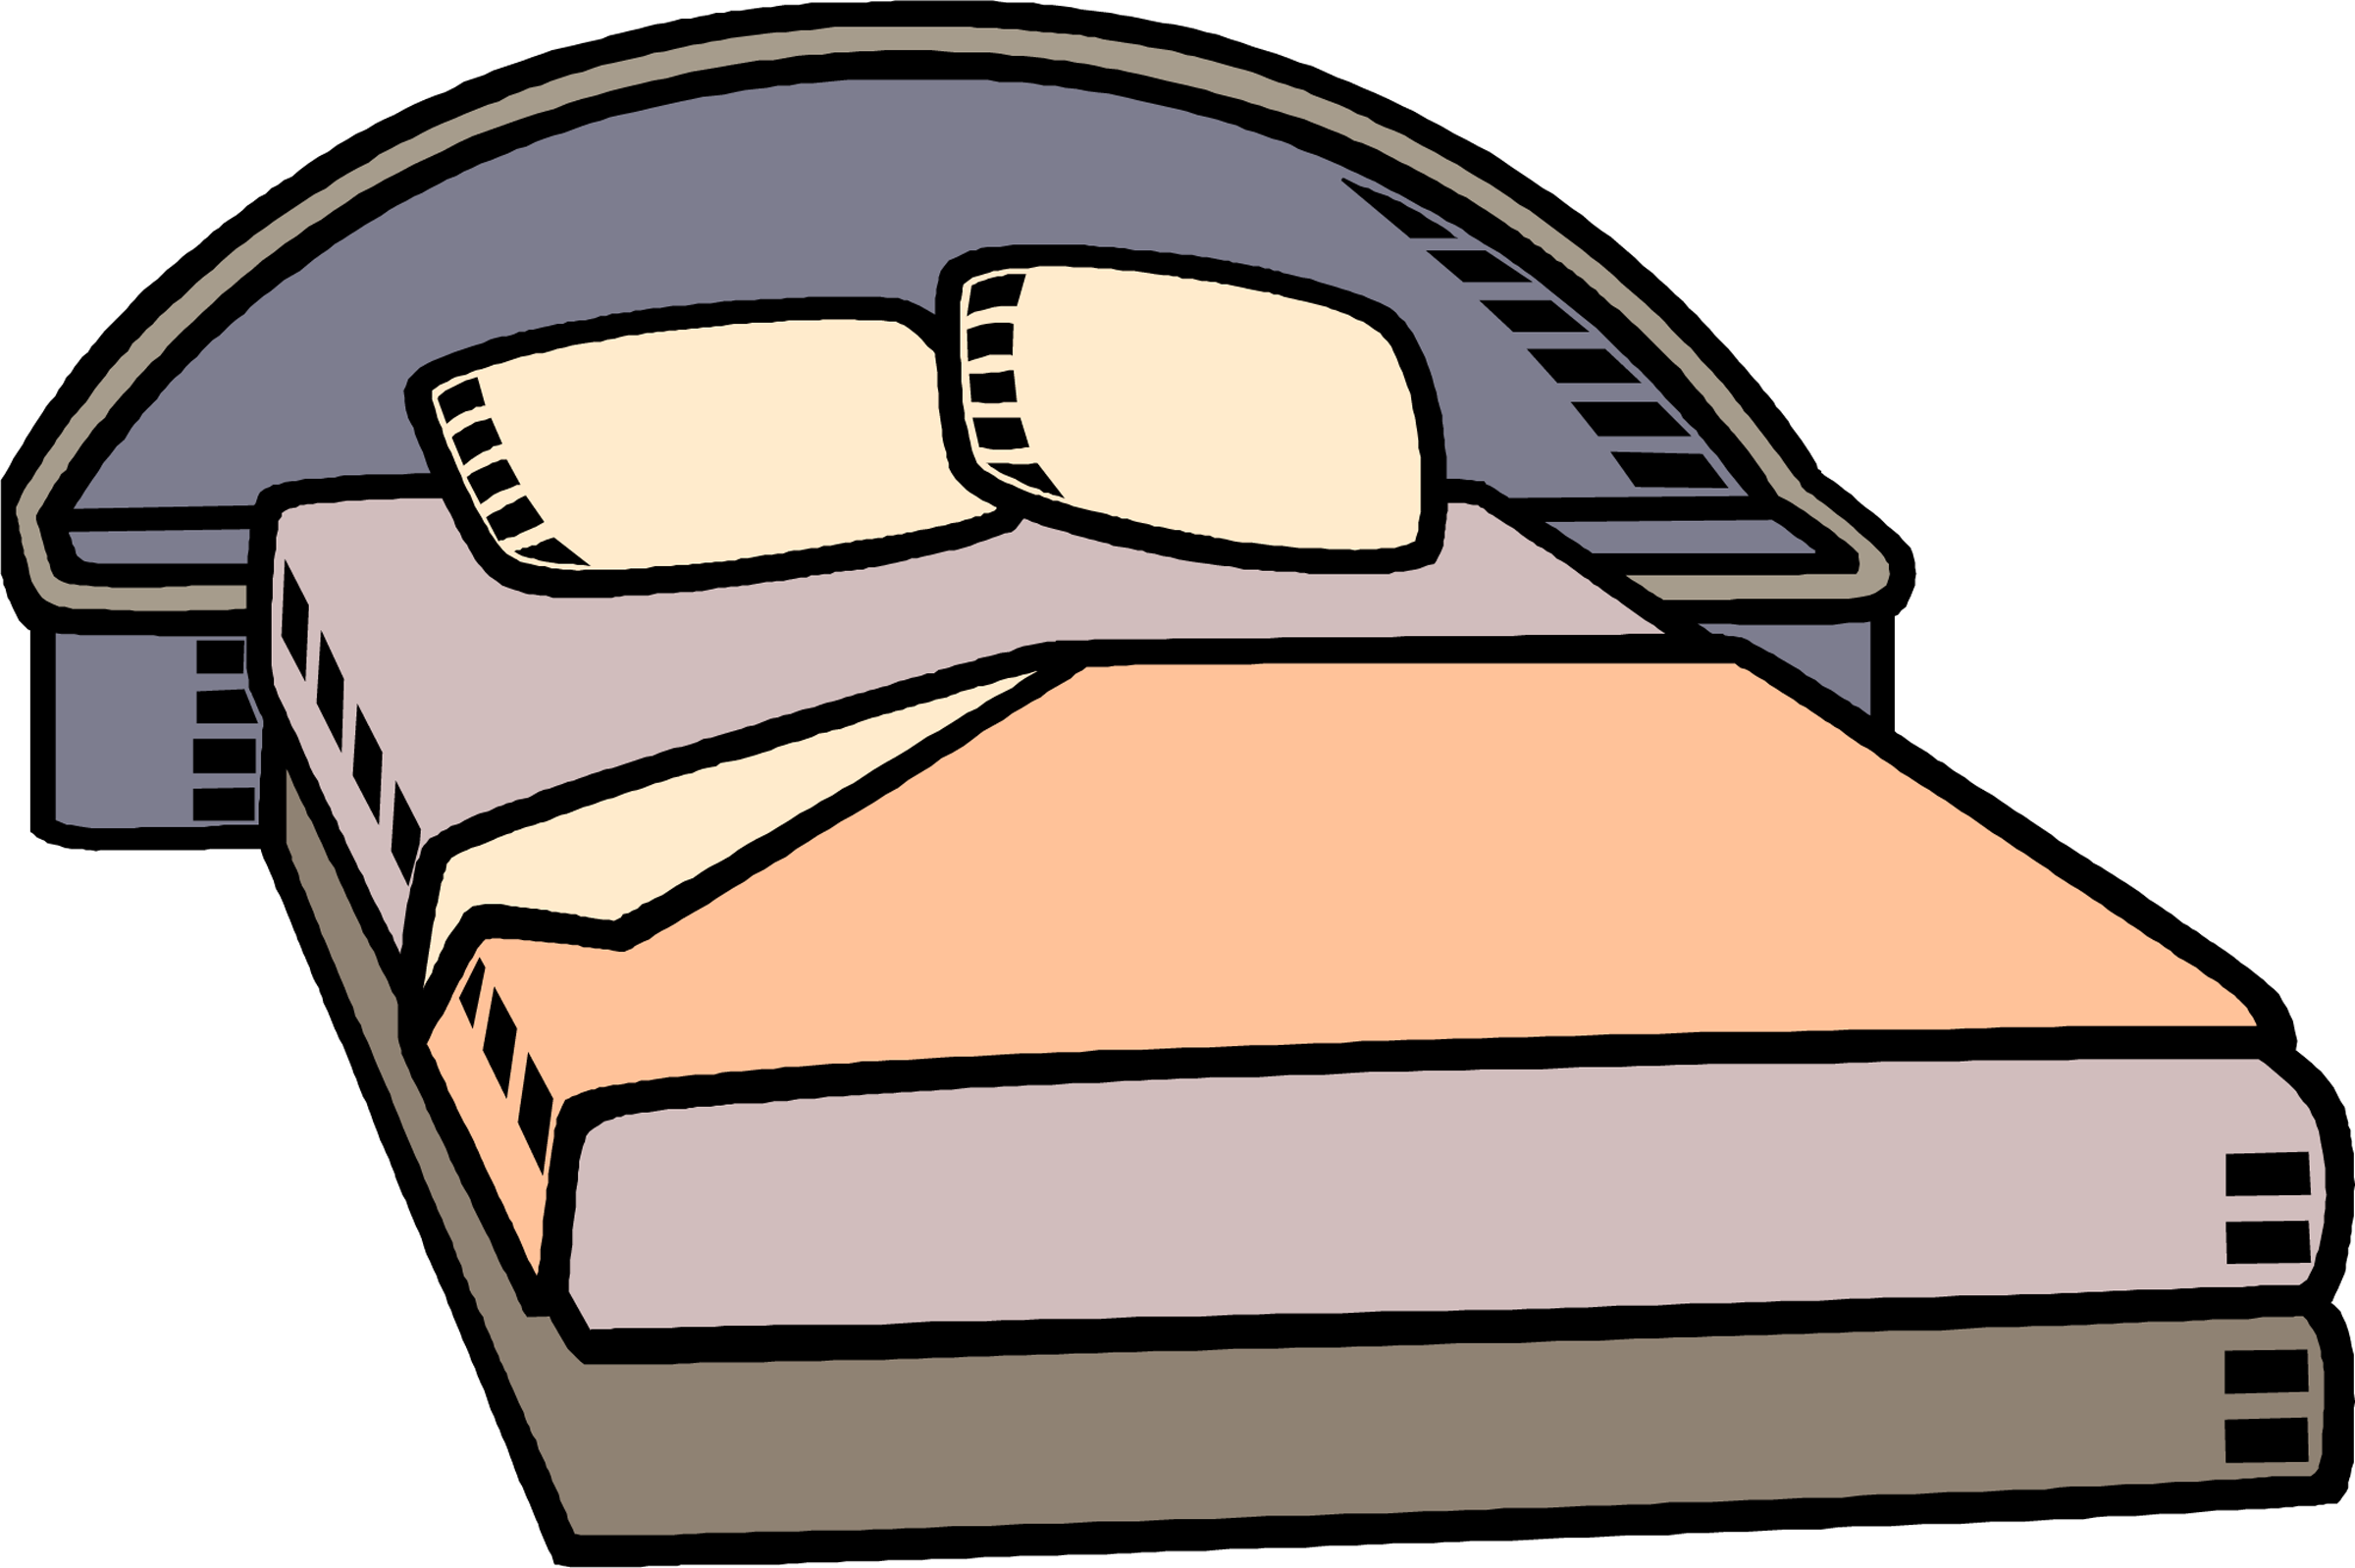 Bed clipart cartoon. Free cliparts download clip